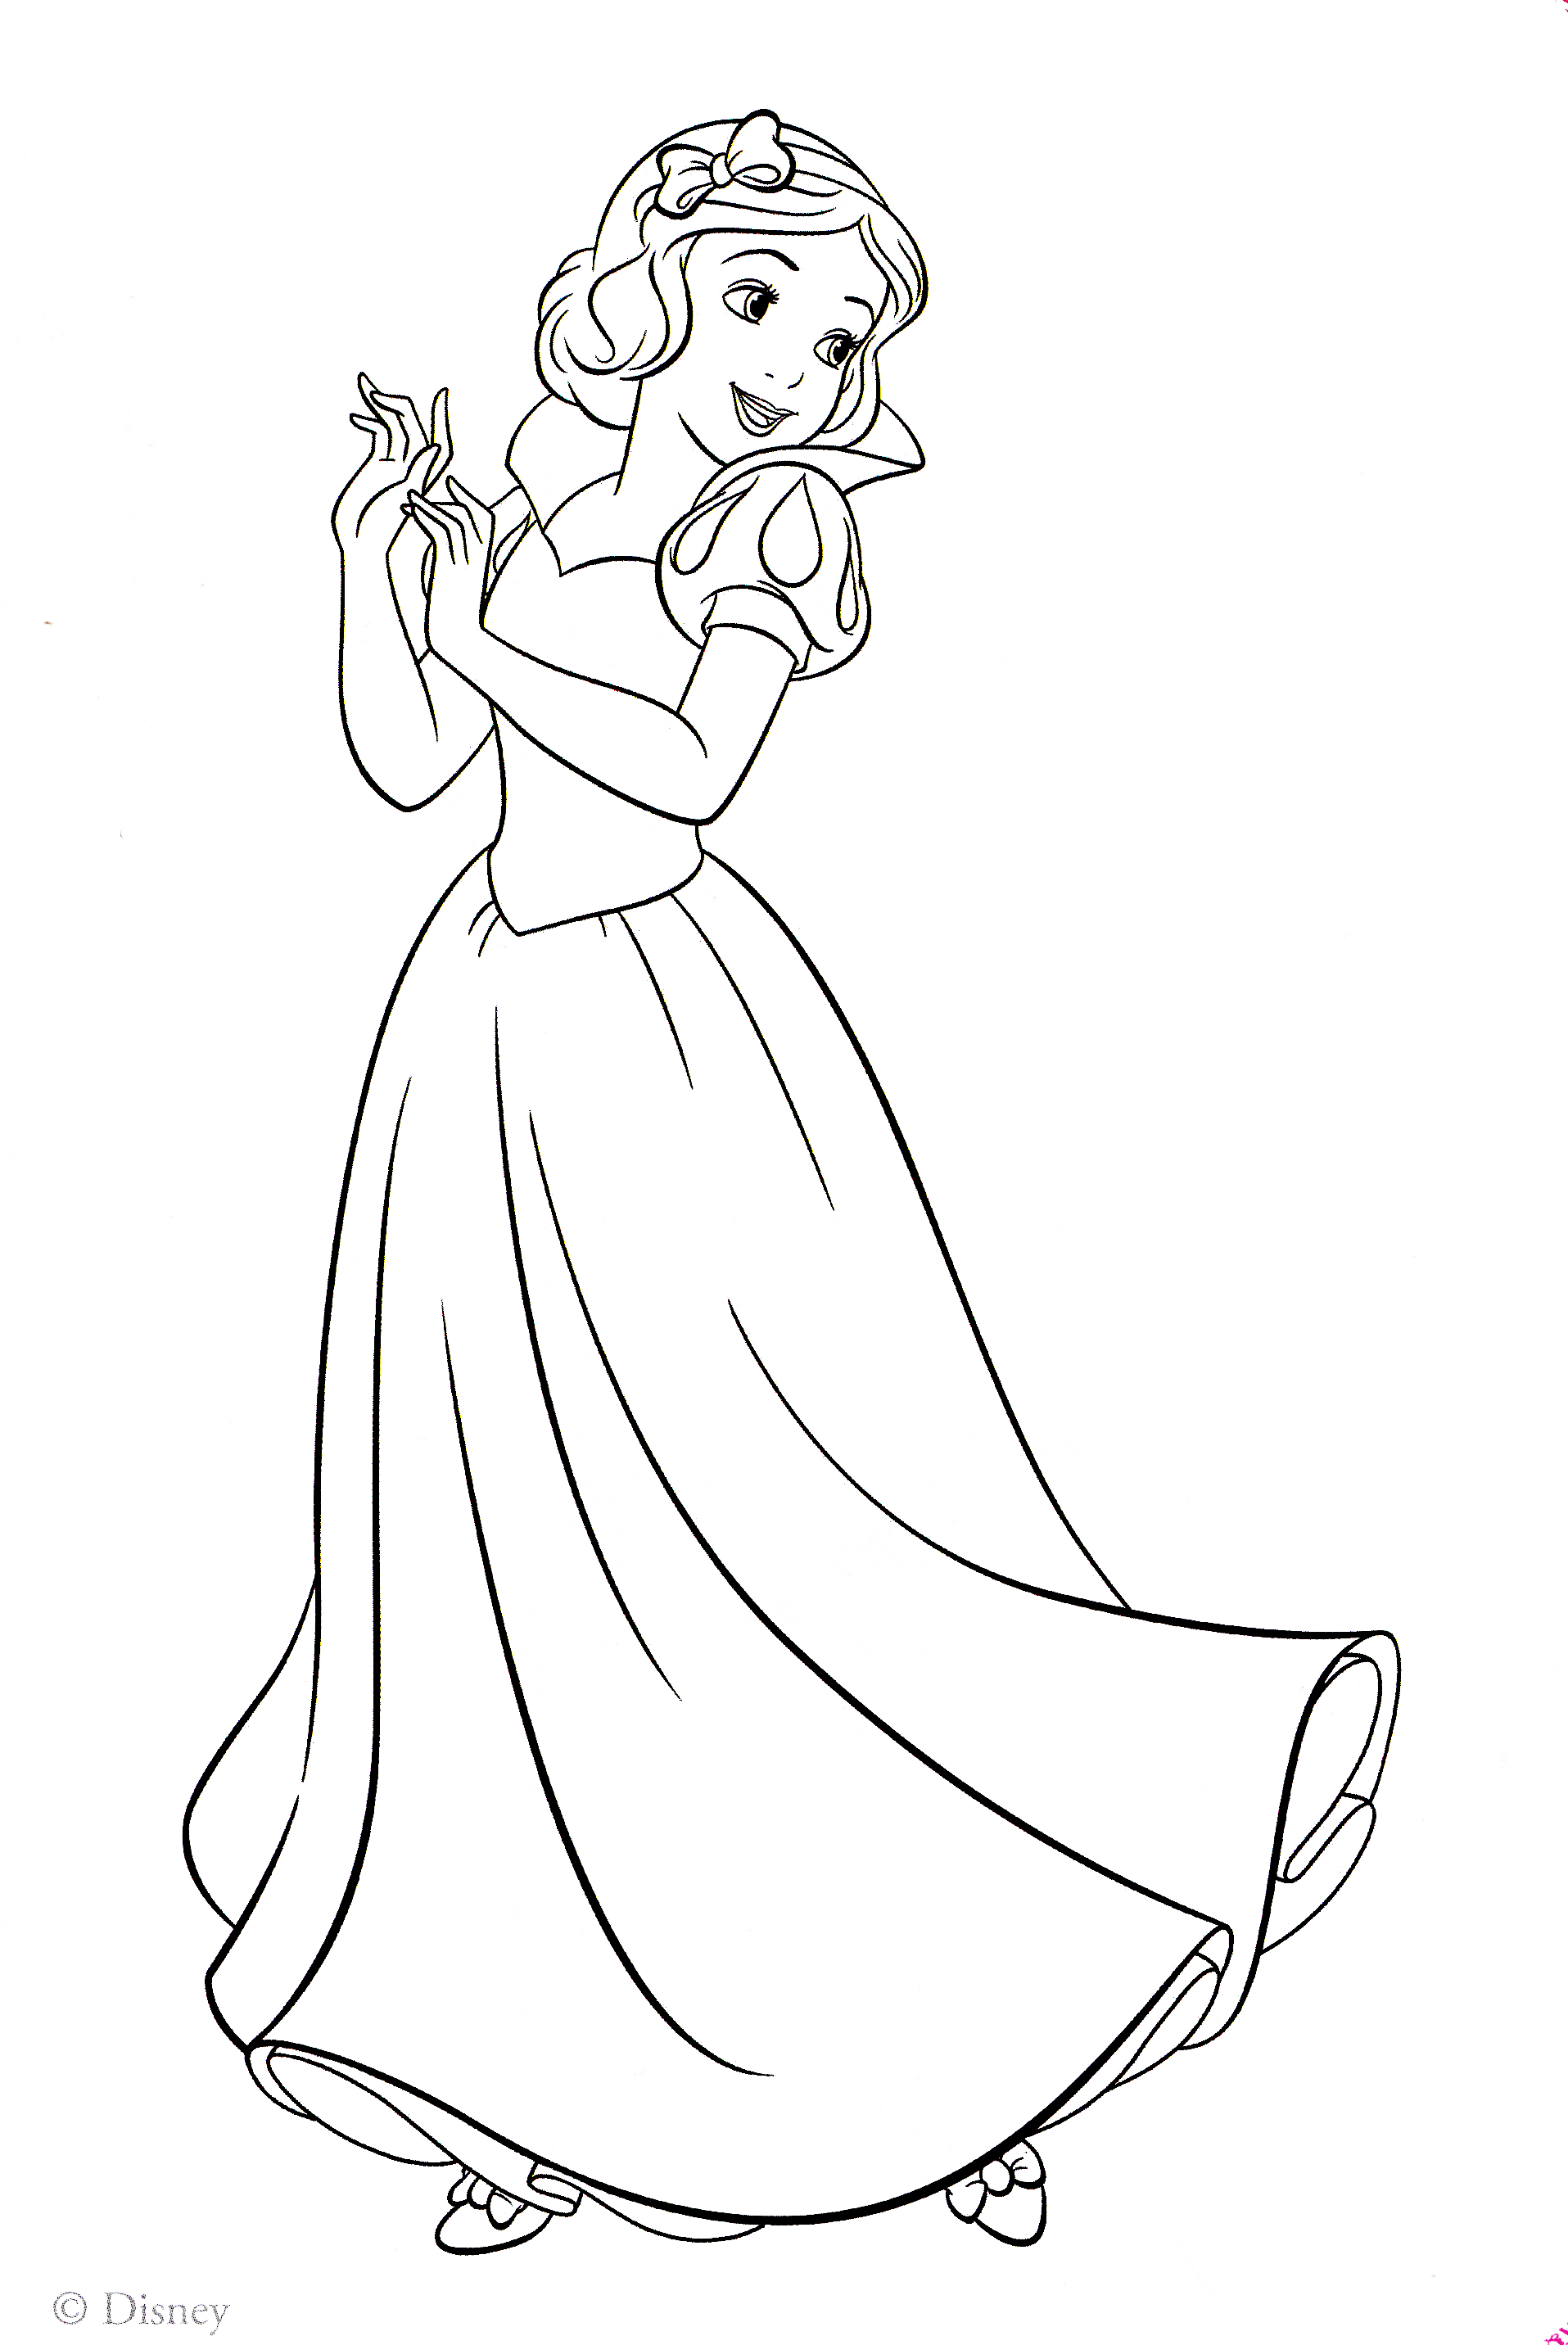 free snow white coloring pages snow white coloring pages princess coloringstar forjpg white coloring free snow pages